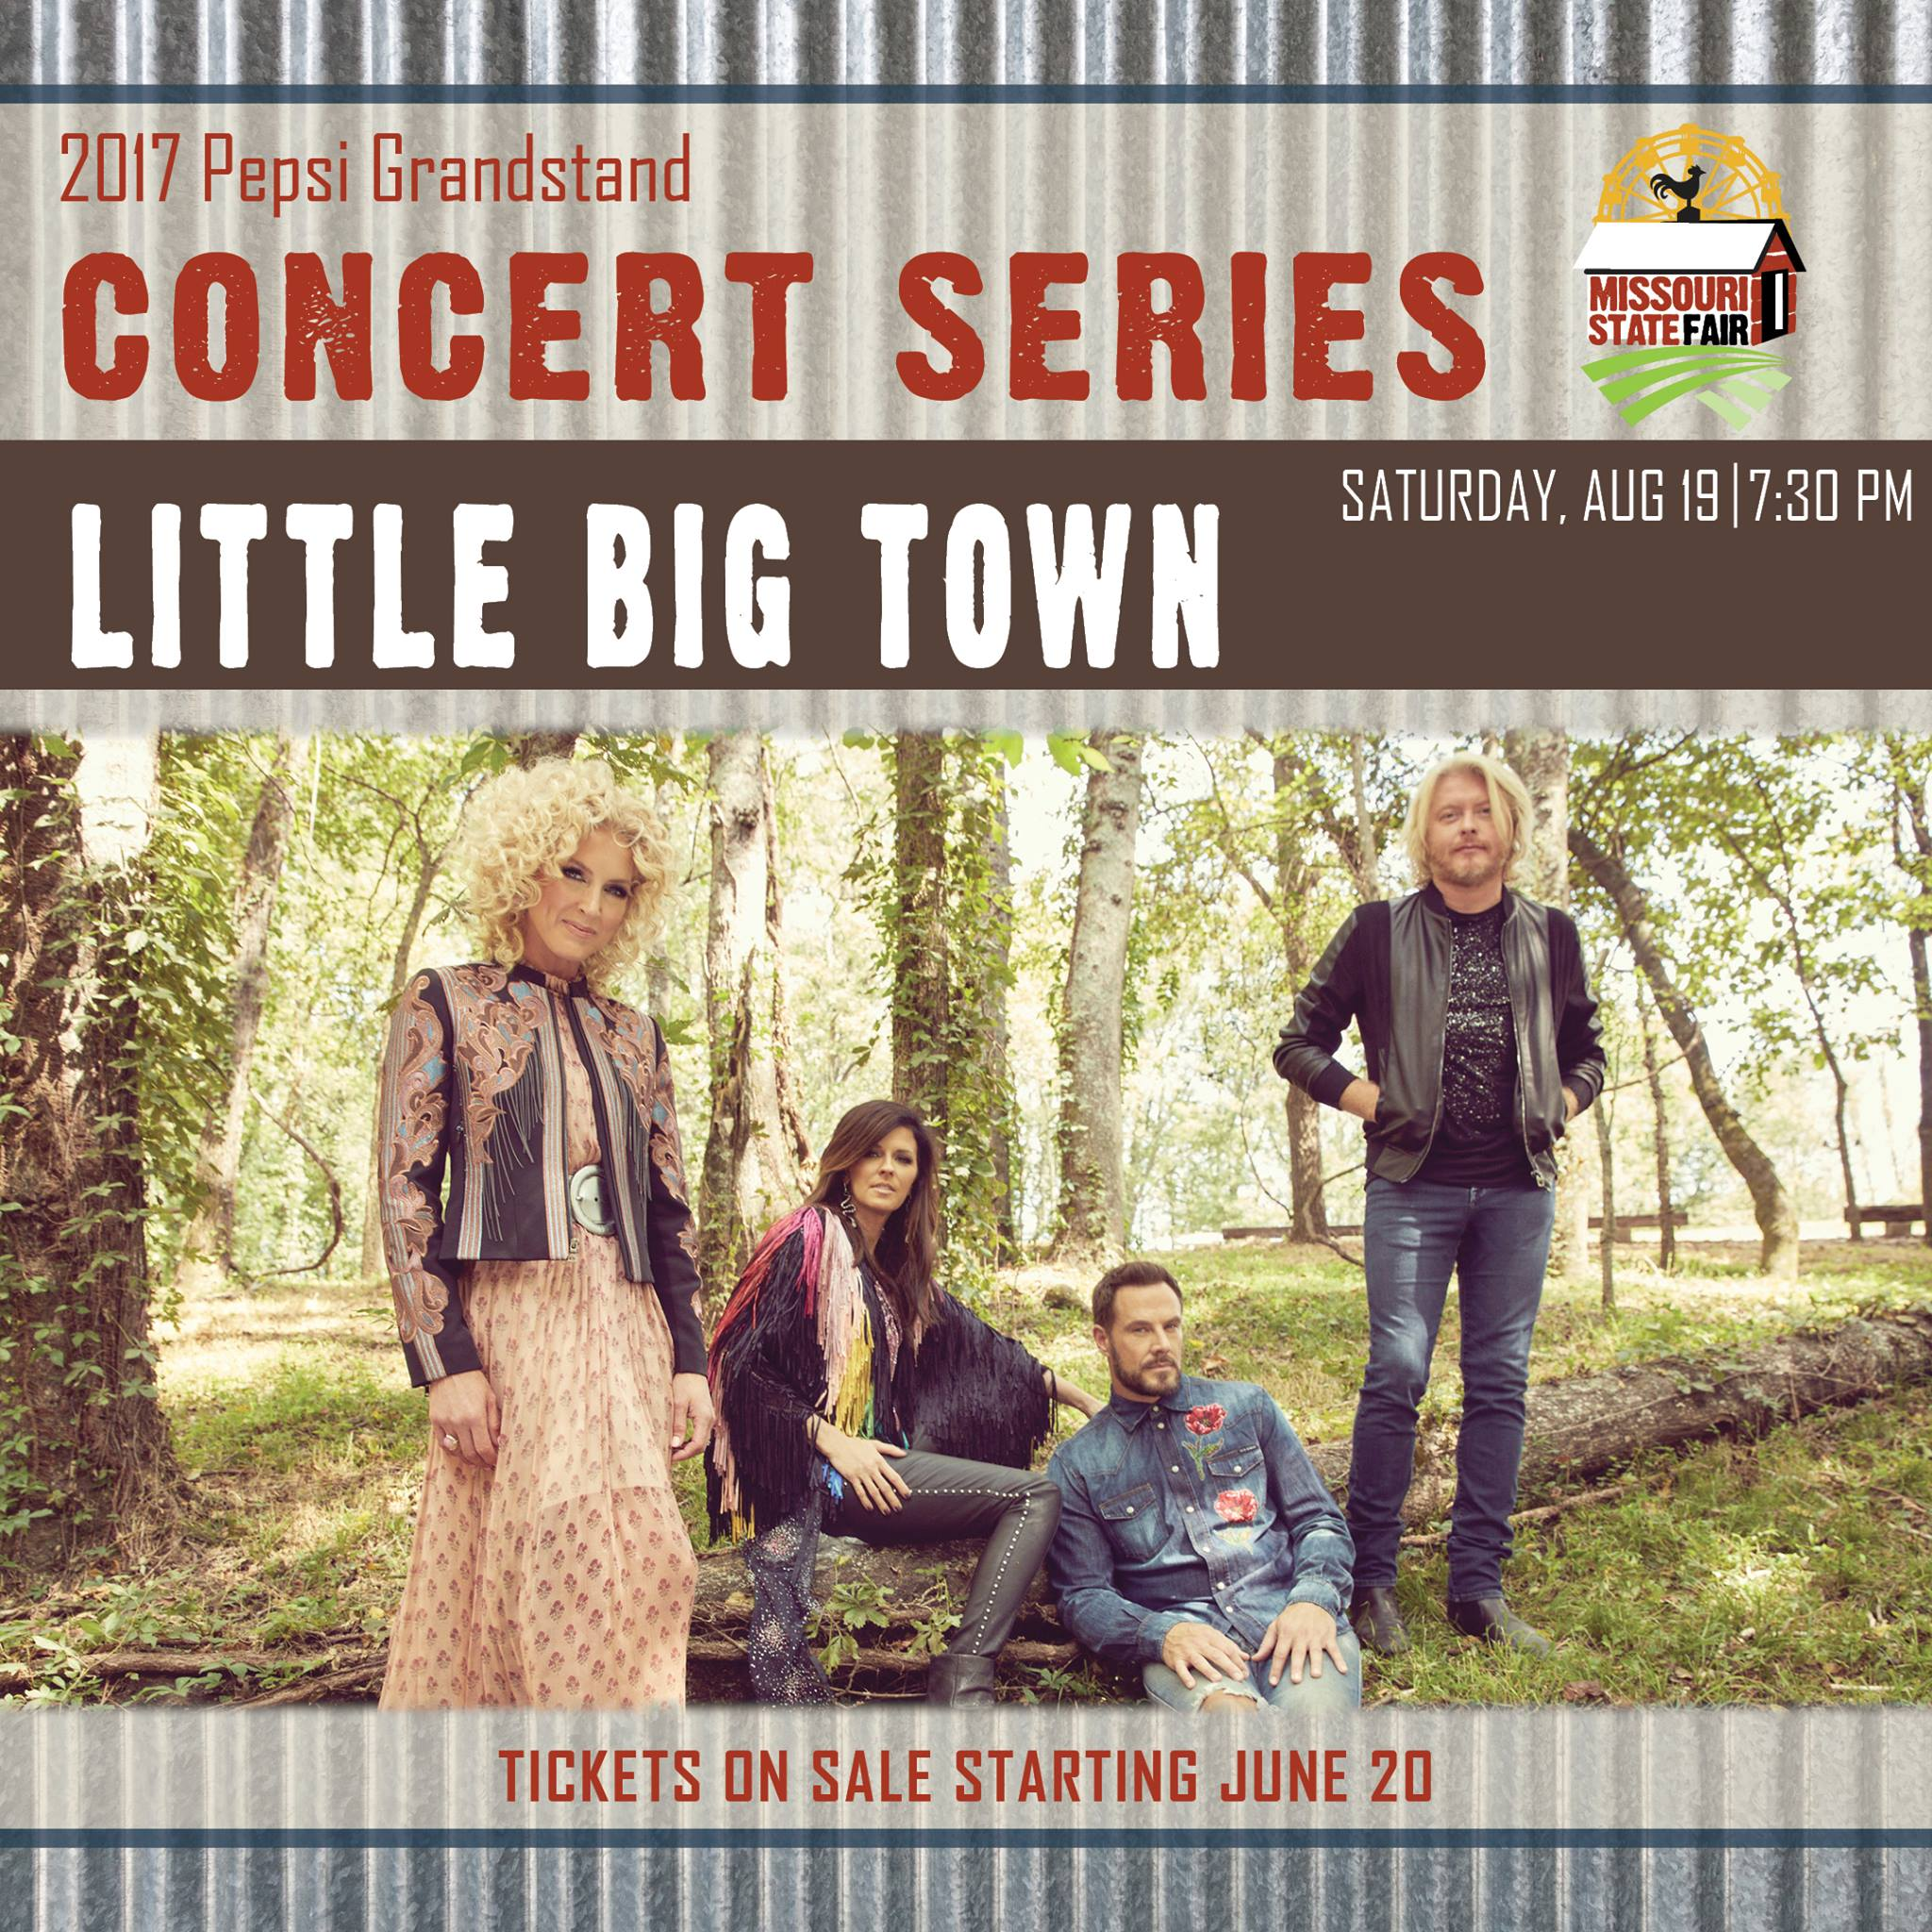 Missouri State Fair announces Little Big Town to perform